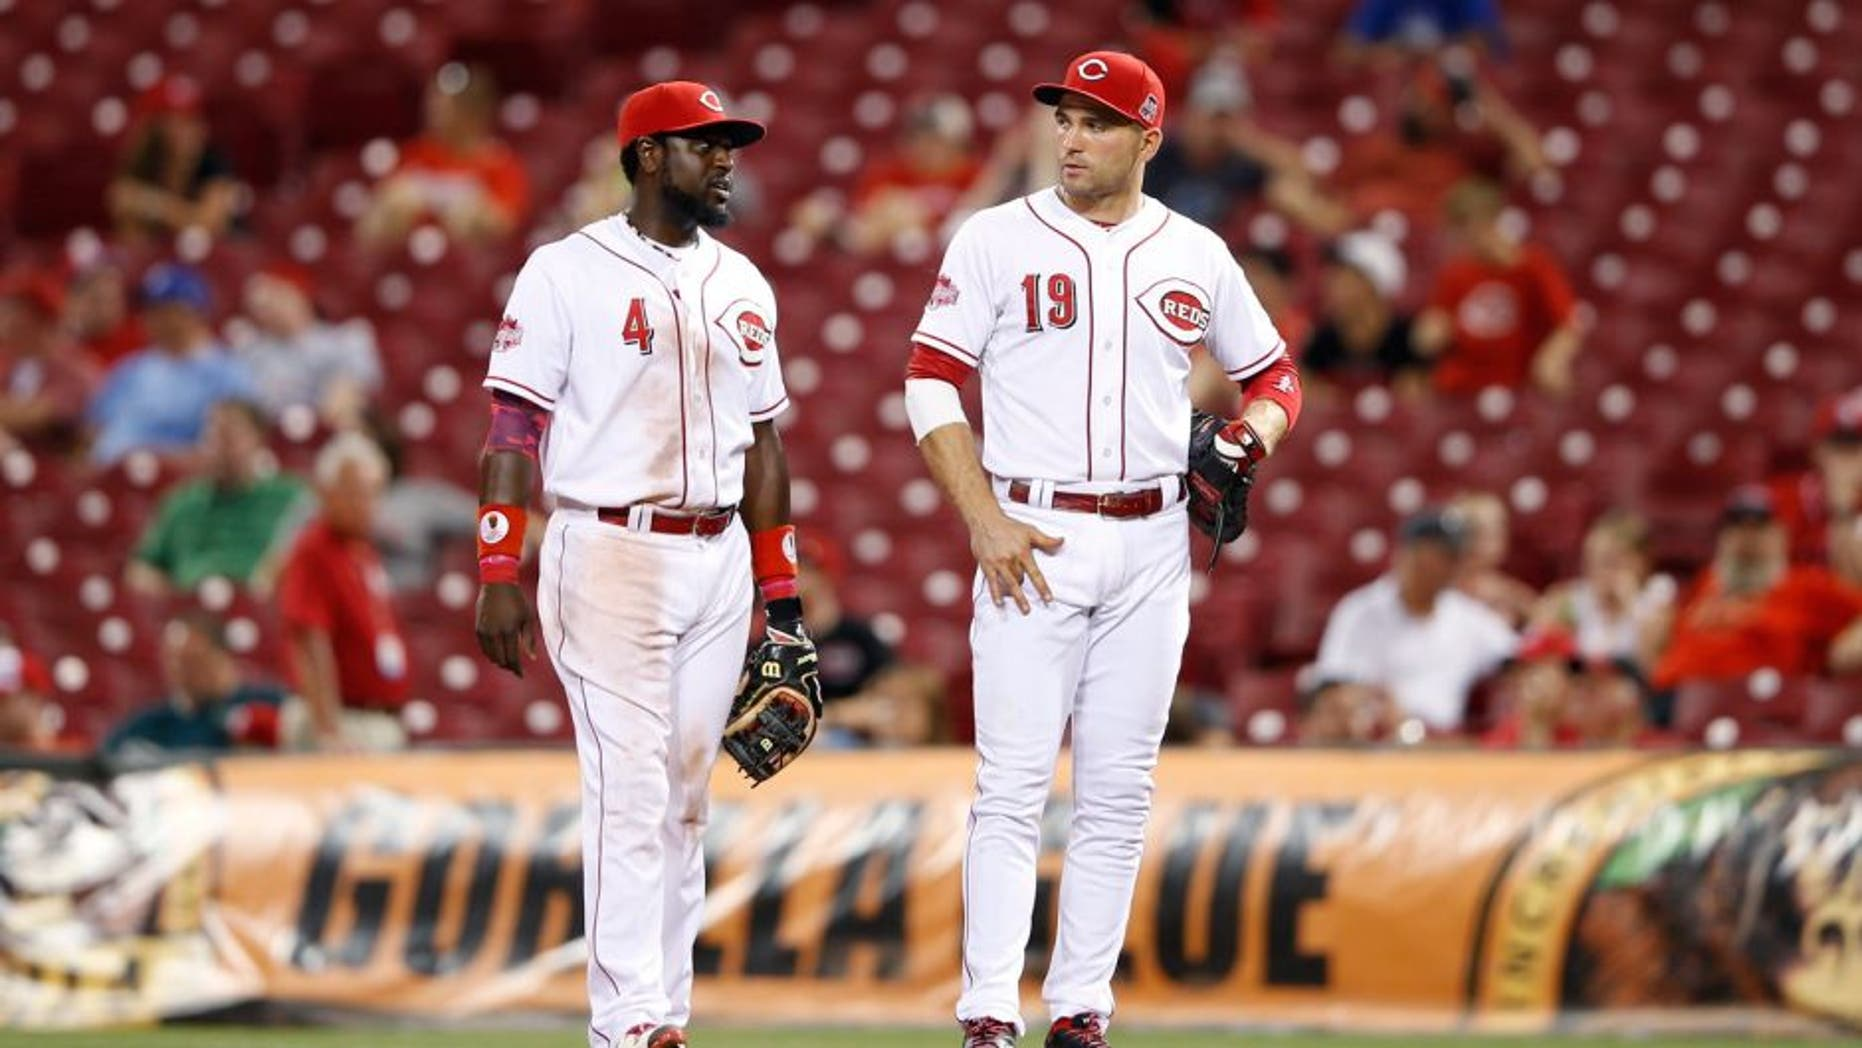 CINCINNATI, OH - AUGUST 18: Joey Votto #19 and Brandon Phillips #4 of the Cincinnati Reds look on against the Kansas City Royals during the game at Great American Ball Park on August 18, 2015 in Cincinnati, Ohio. The Royals defeated the Reds 3-1 in 13 innings. (Photo by Joe Robbins/Getty Images)